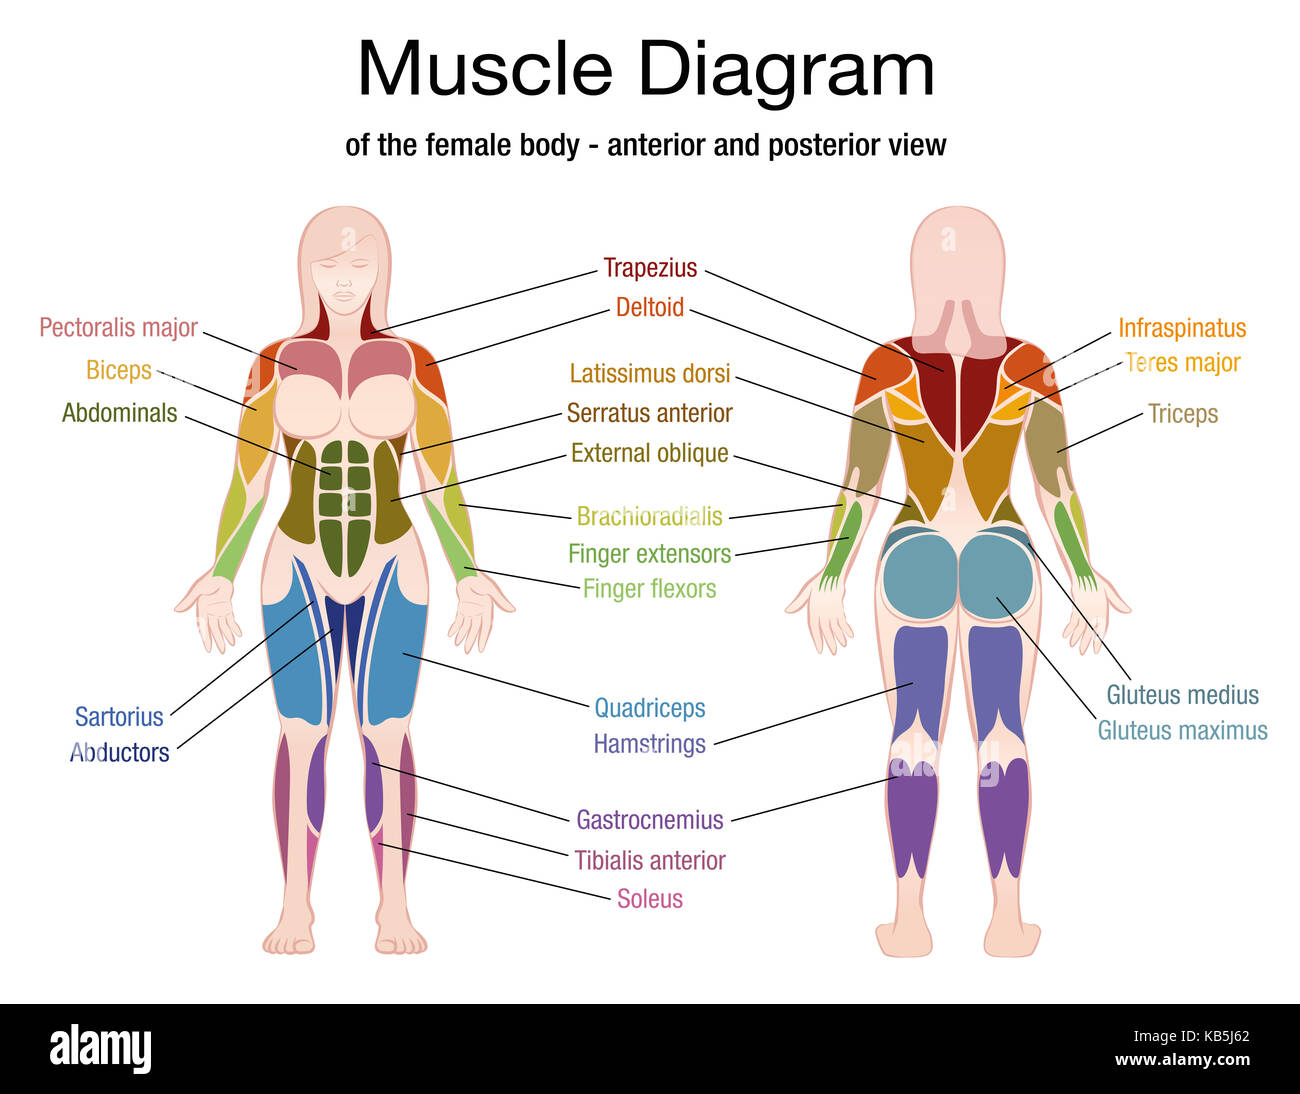 Muscle Diagram Of The Female Body With Accurate Description Of The